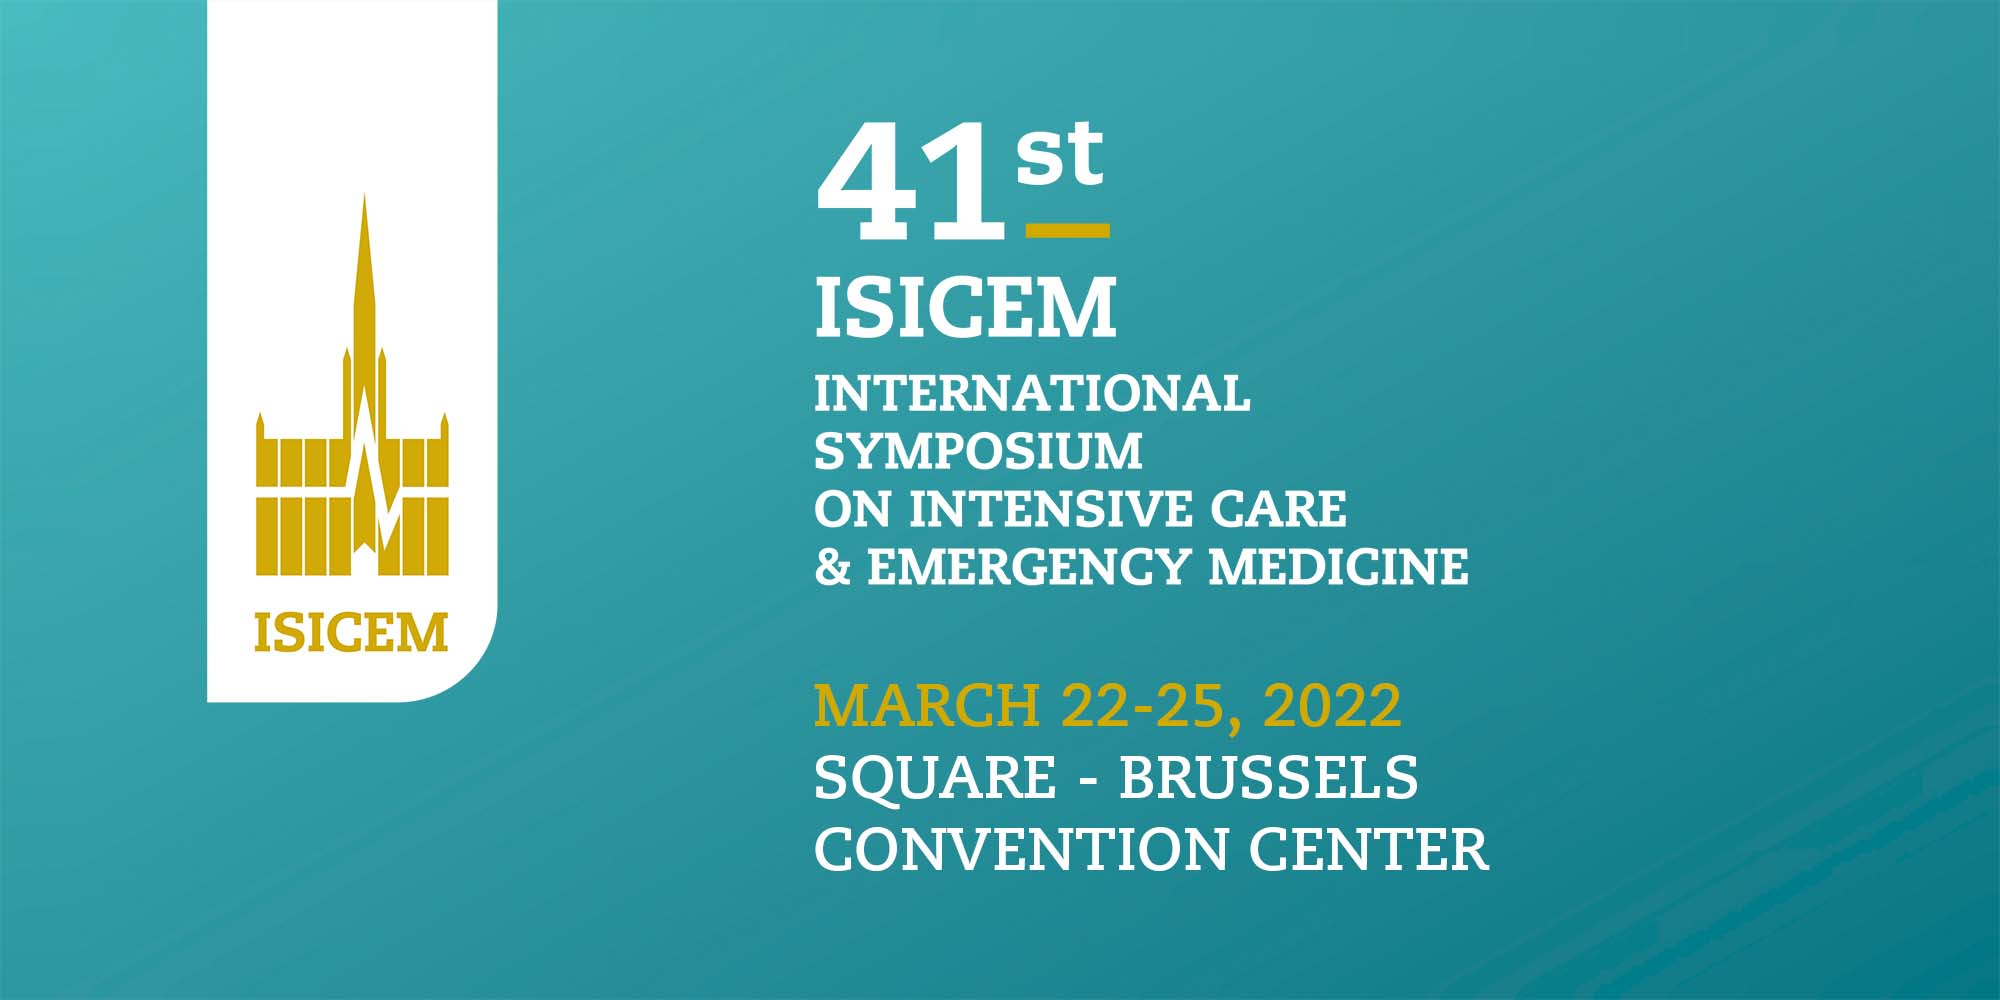 40th ISICEM - REGISTRATION